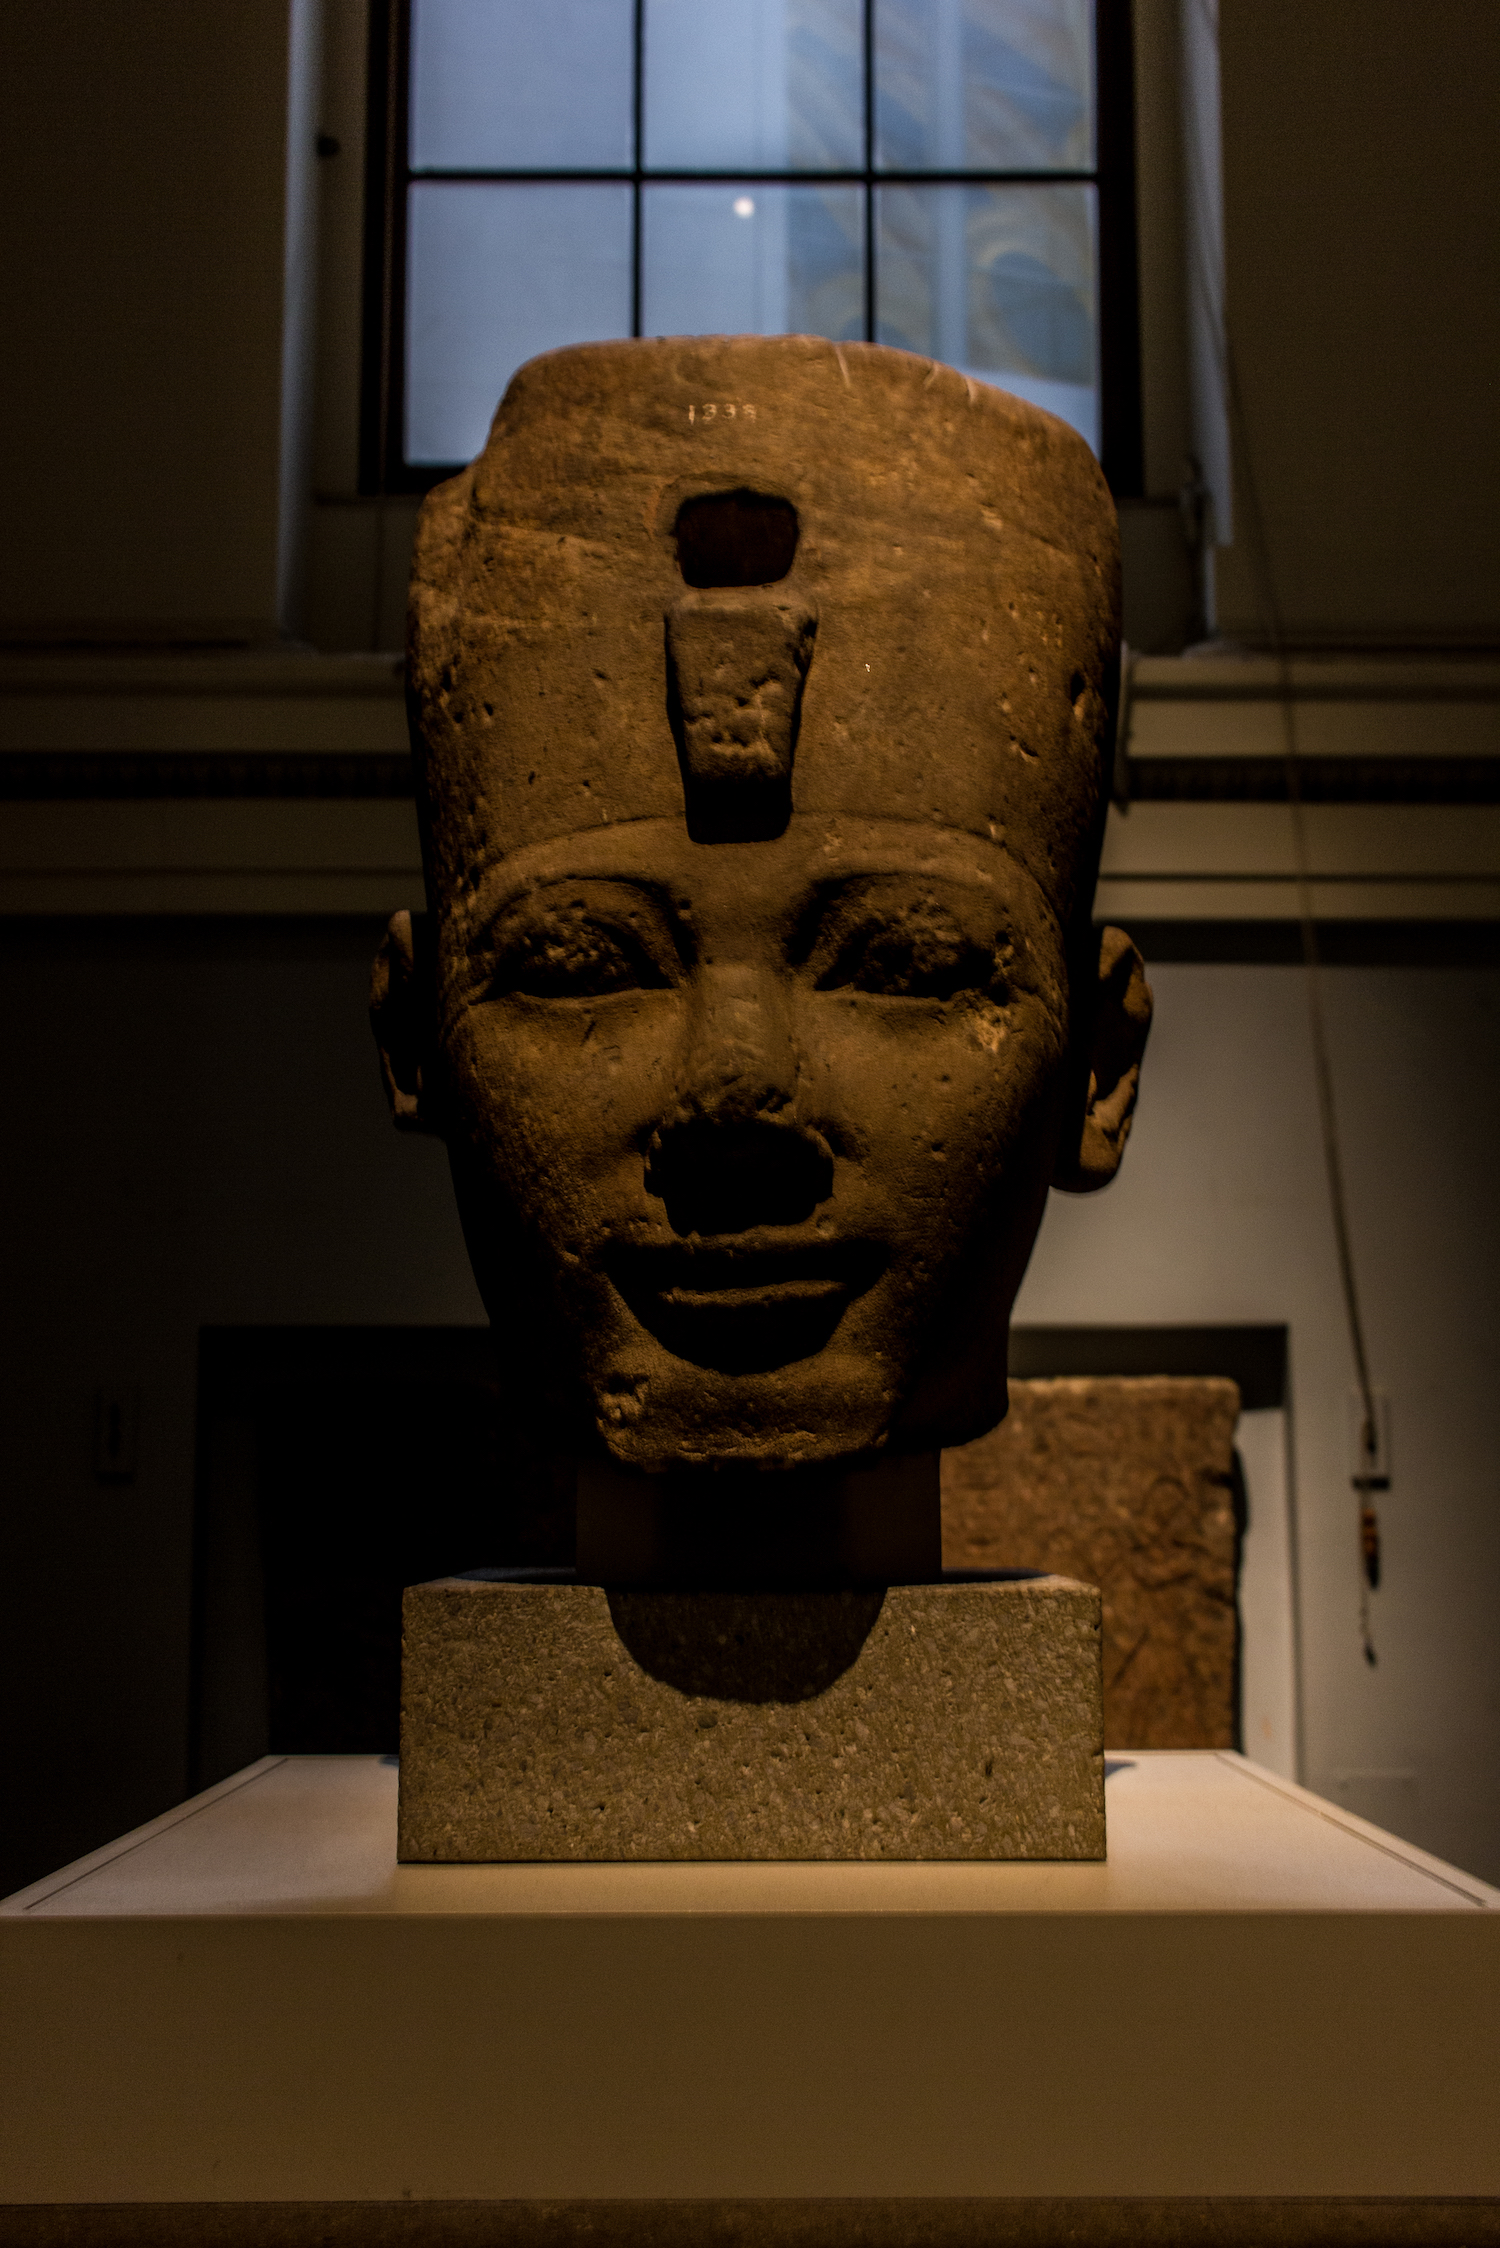 Professional Photography Stone Head Sculpture From Kemet Egypt Of King Tuthmosis I In British Museum London